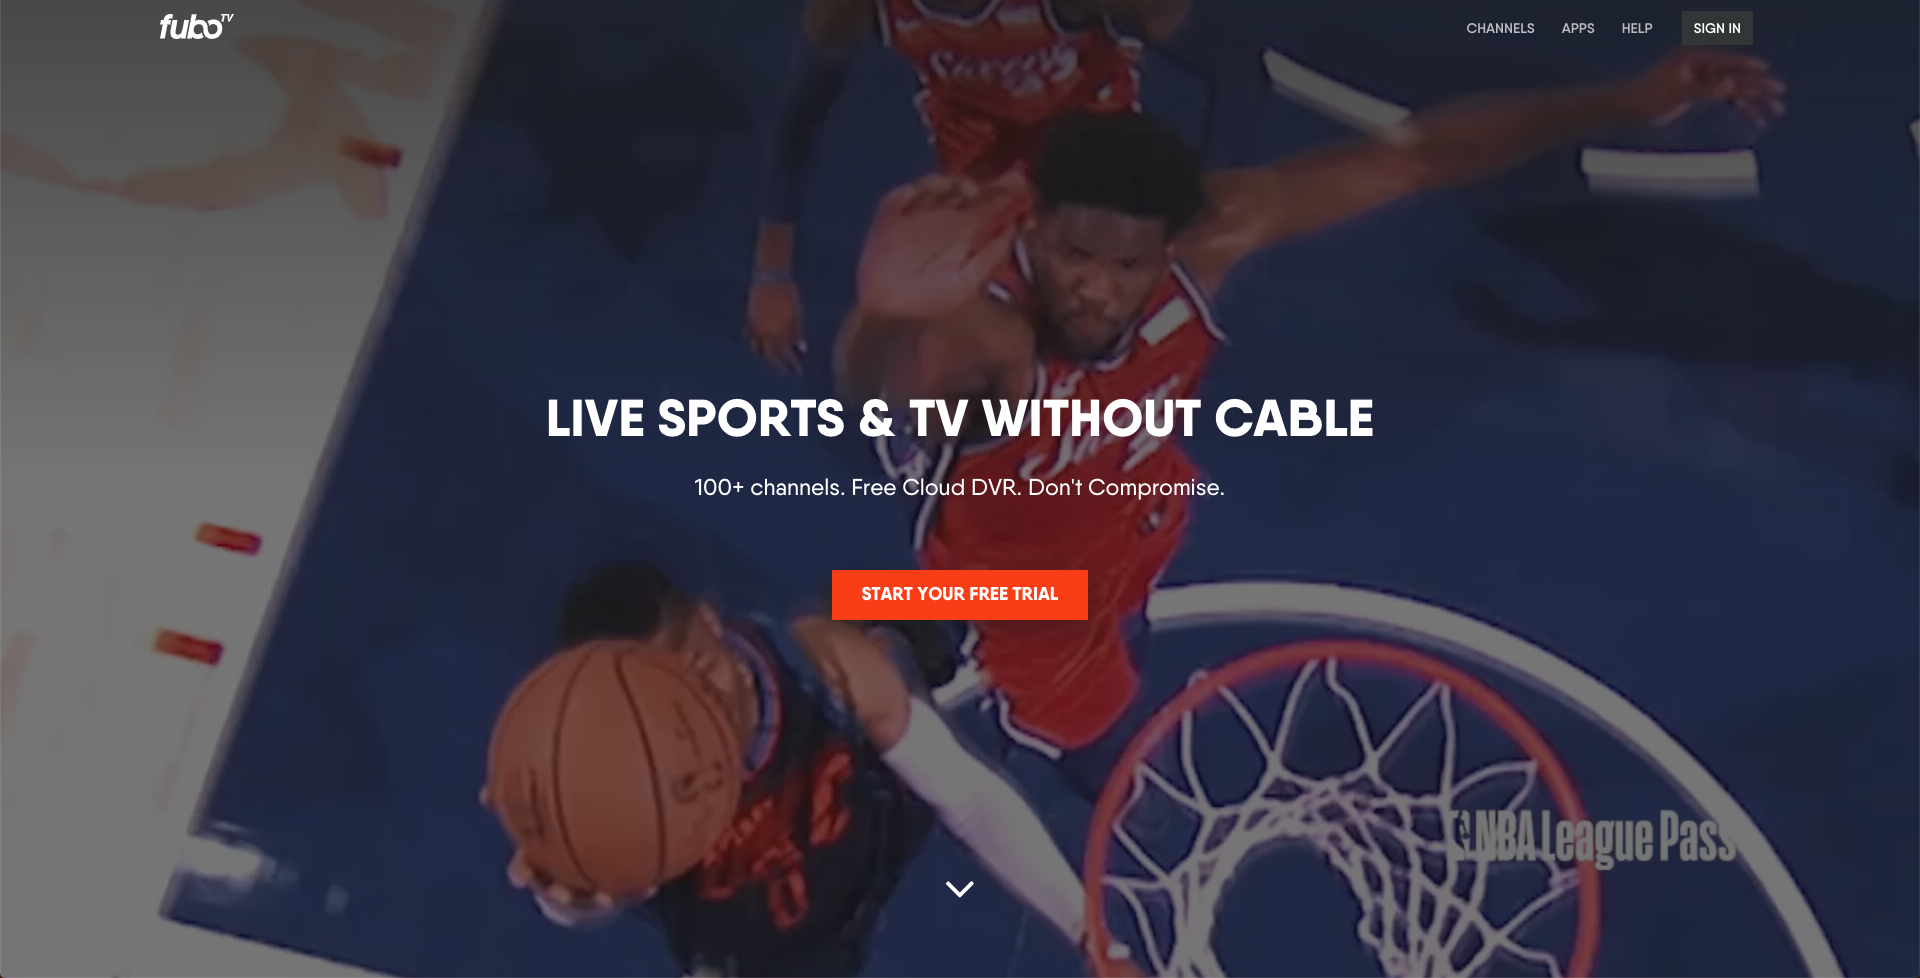 fubotv simultaneous streams